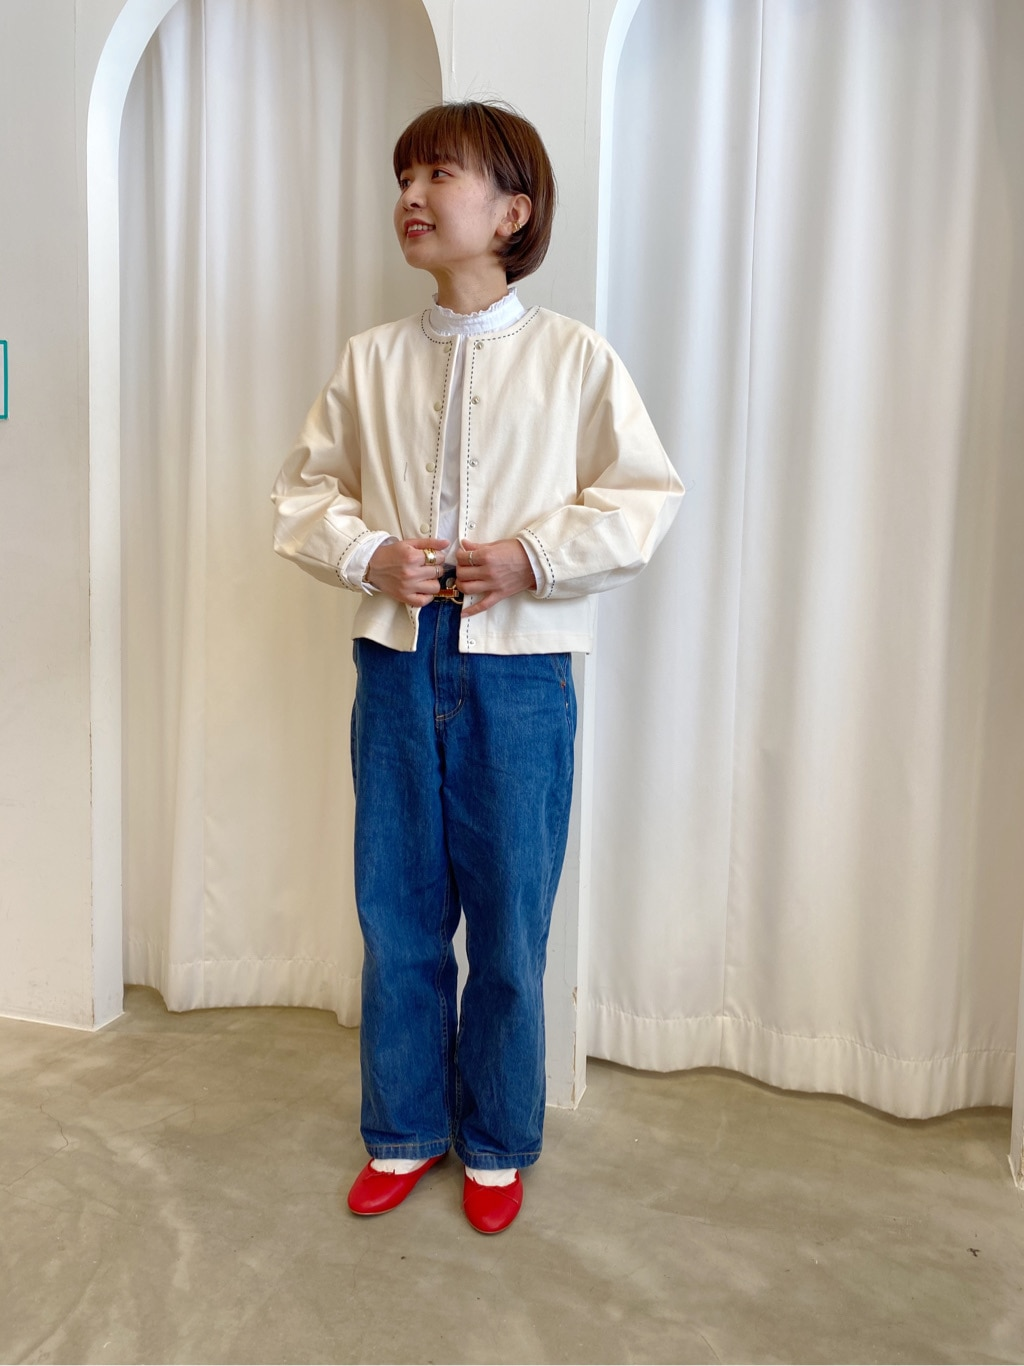 Dot and Stripes CHILD WOMAN ラフォーレ原宿 身長:152cm 2020.04.11